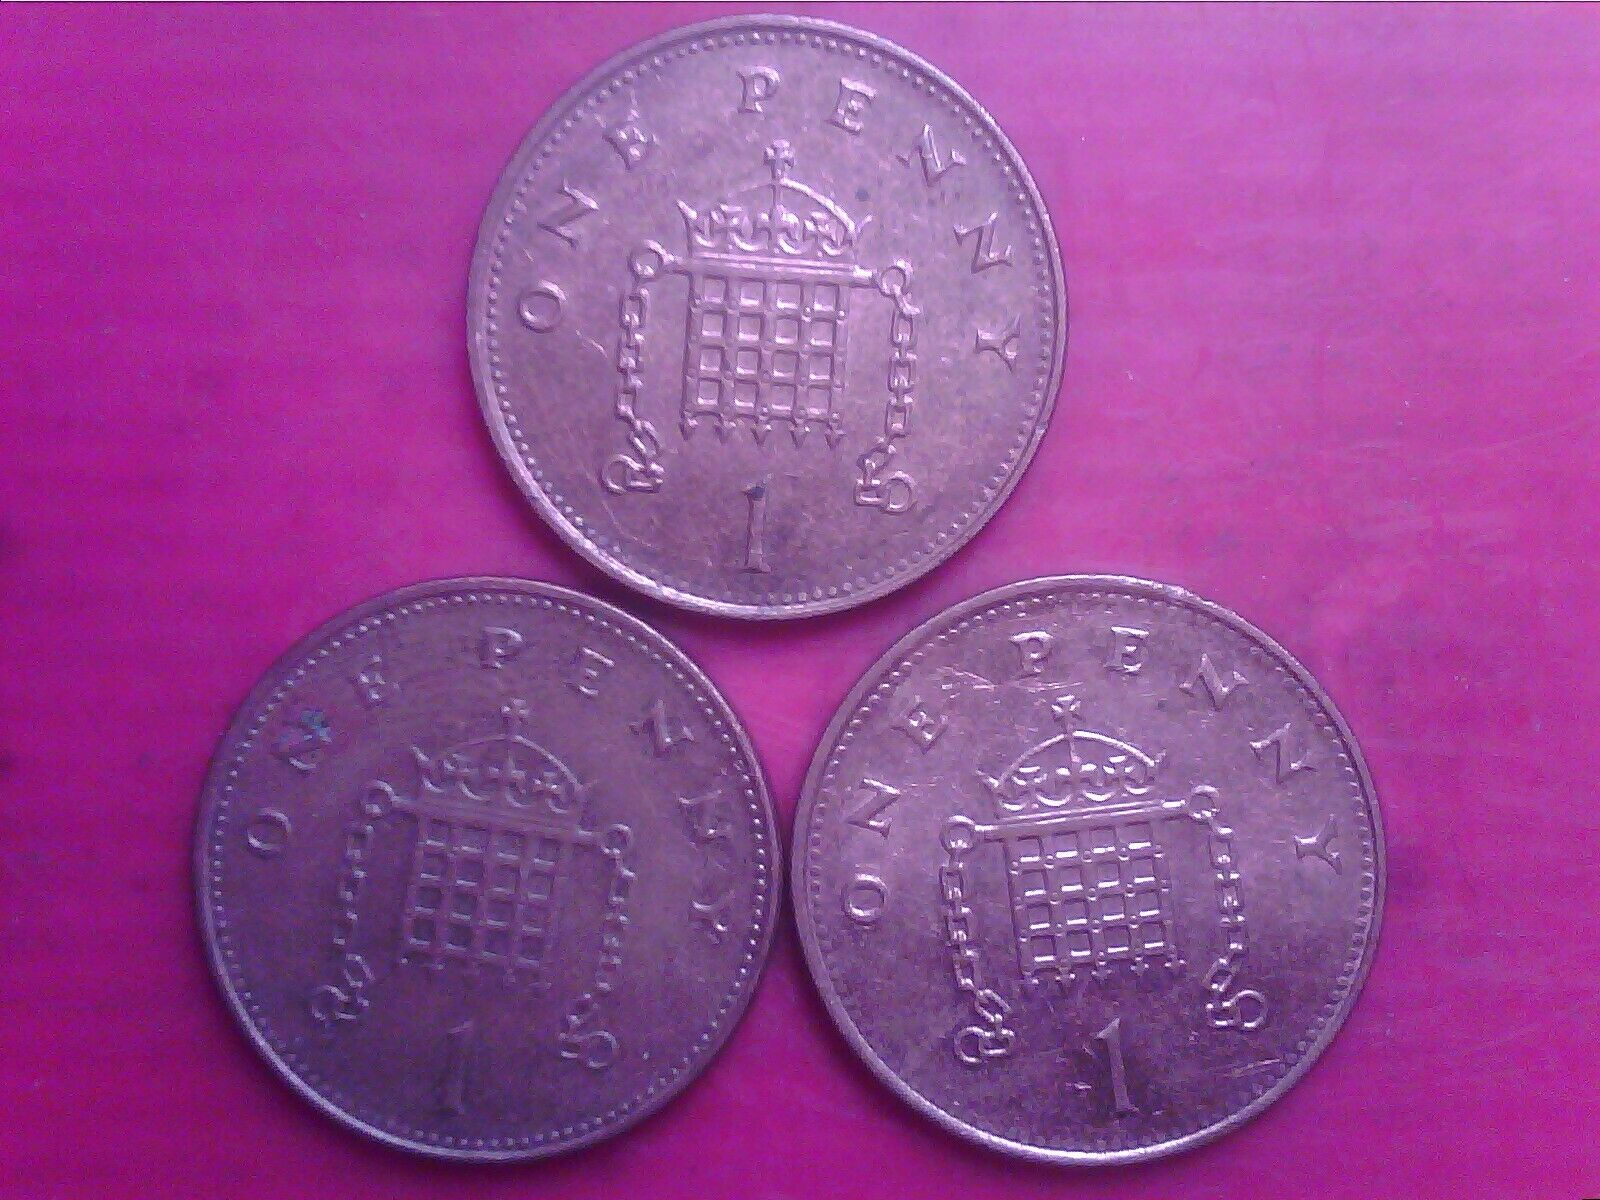 GREAT BRITAIN ONE PENNY 1998 1999 2000 JUL01F - Image 1